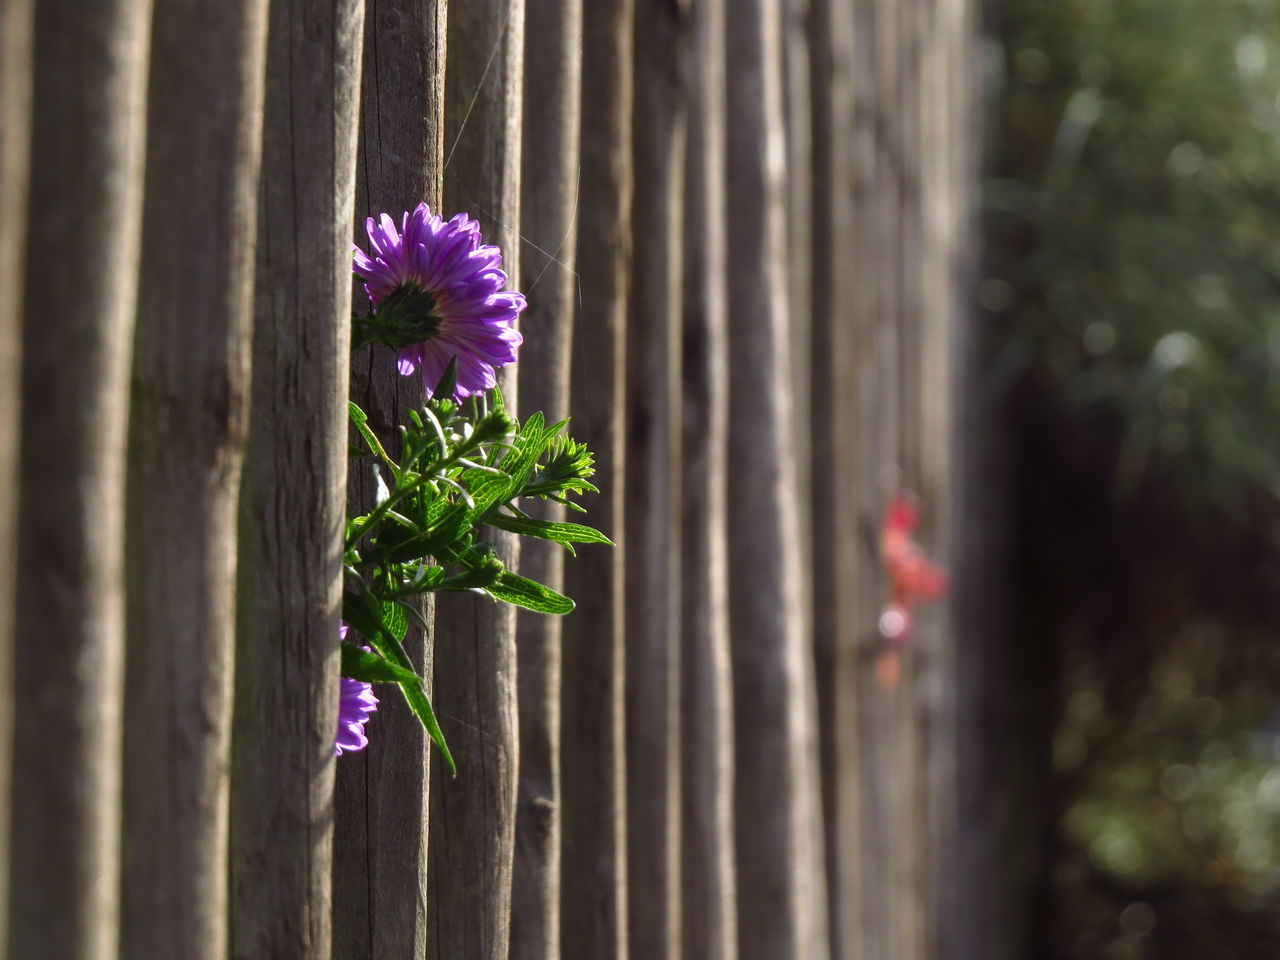 Awakening Beauty In Nature Bloom Blooming Breaking Down Fences Close-up Fence Fences Flower Flower Head Fragility Garden Fence Growth Nature Peeking Picket Fence Plant Purple Spring Suburbia Through The Fence Towards The Sun Wood Material Wooden Wooden Fence